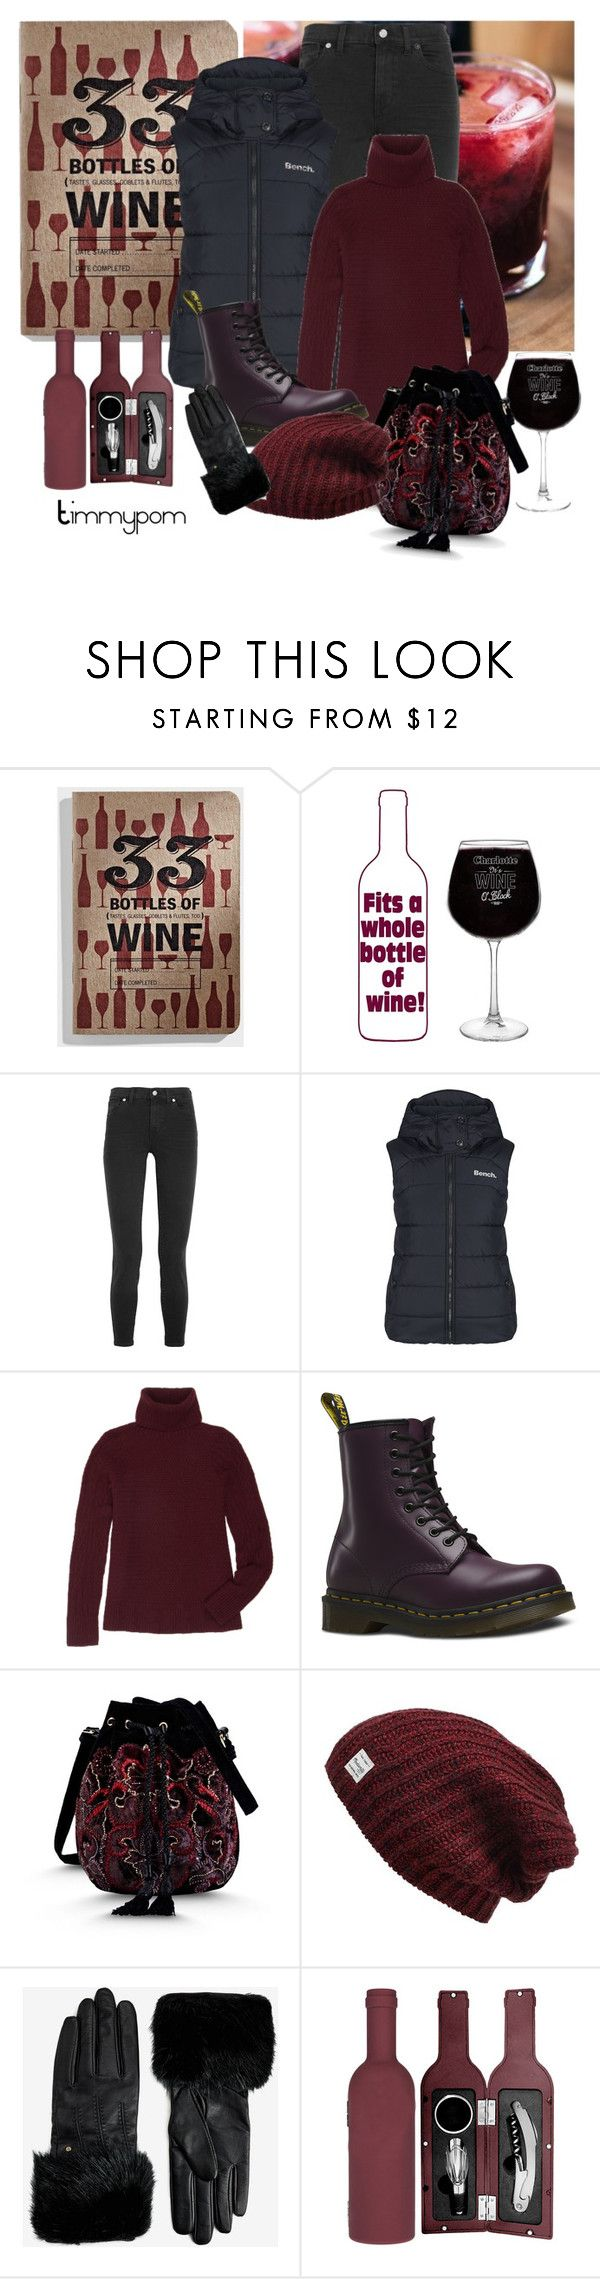 """""""Shopping..."""" by timmypom ❤ liked on Polyvore featuring Madewell, Bench, The Row, Dr. Martens, Alberta Ferretti, Ted Baker, jeans, oxblood, vest and turtleneck"""